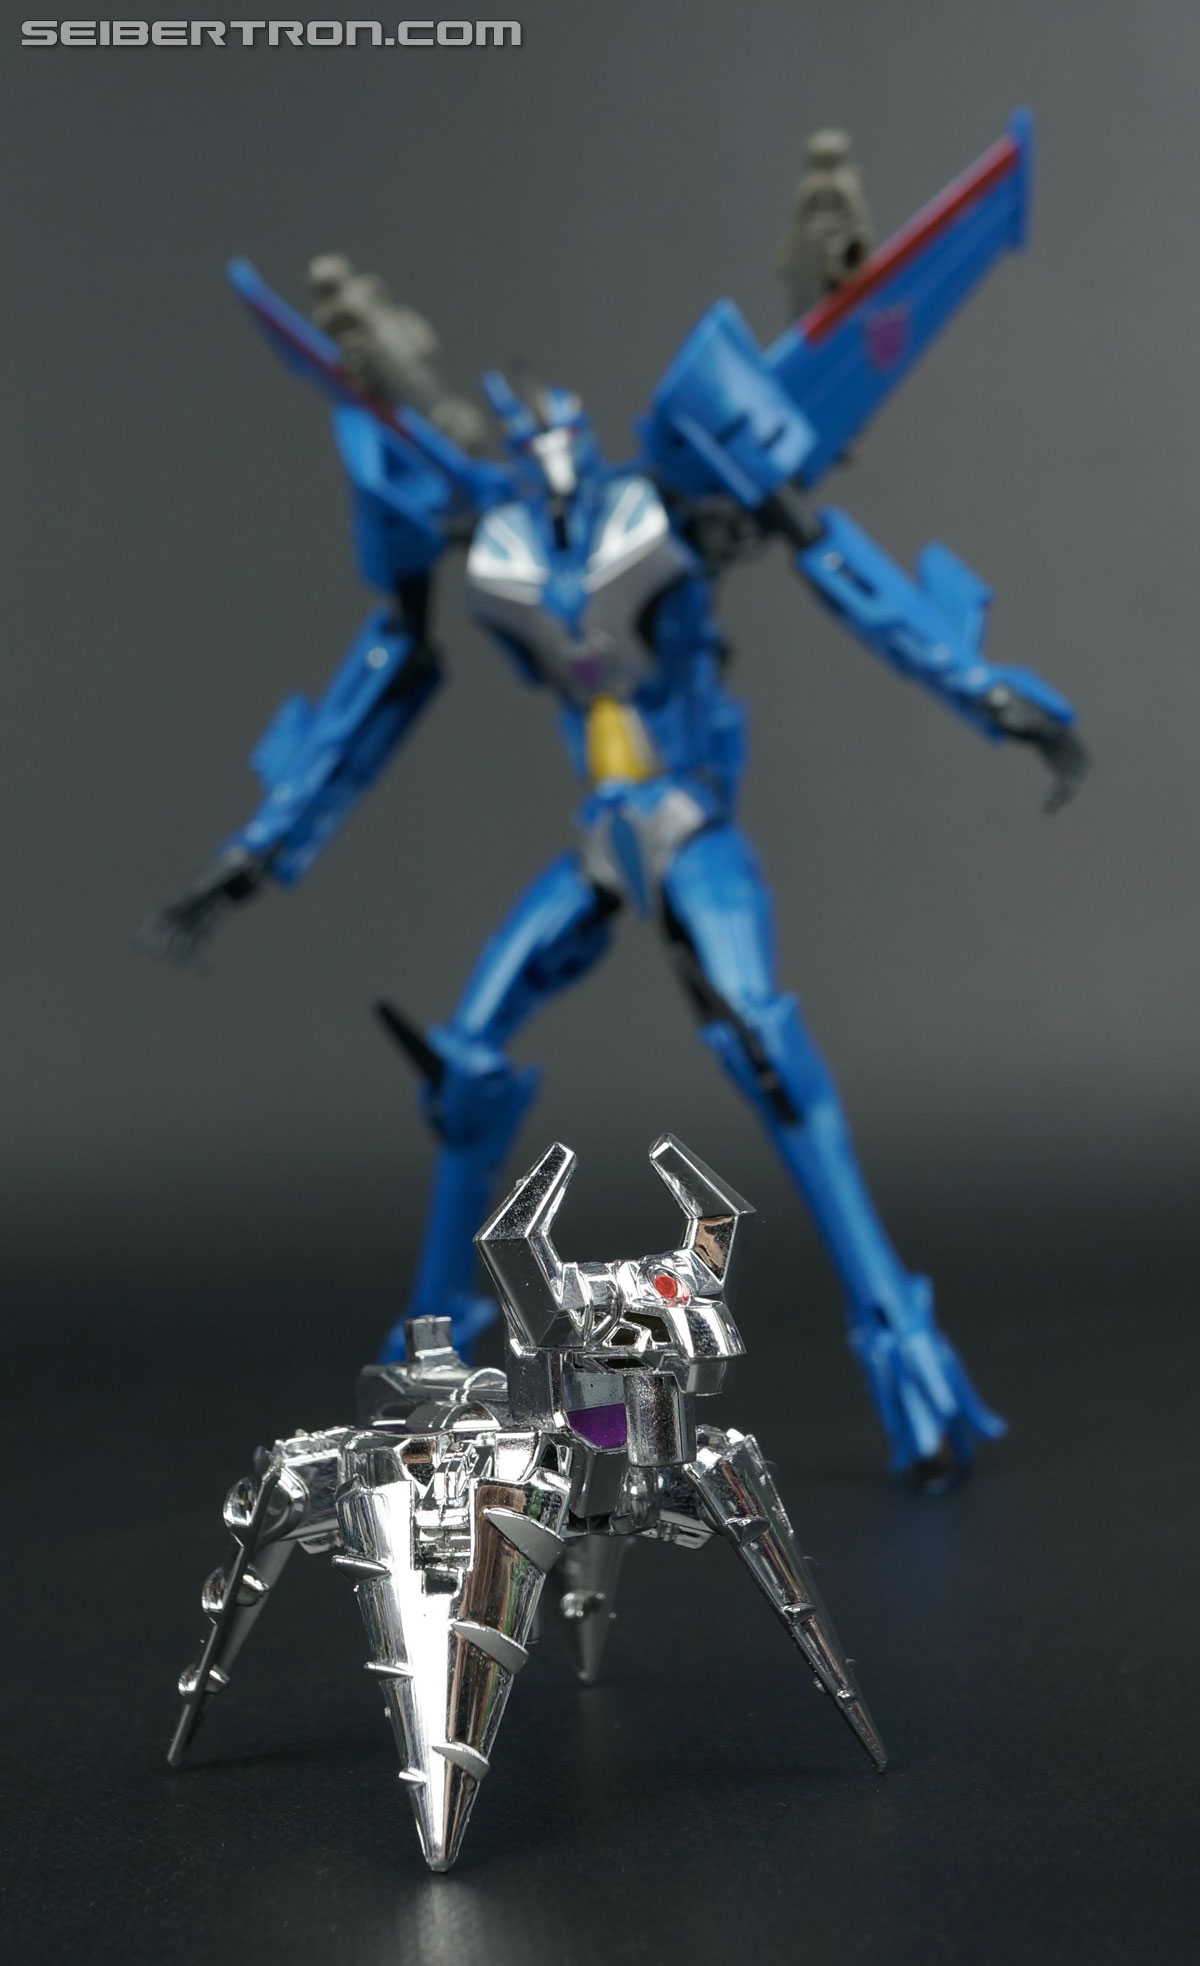 Transformers Arms Micron Silver Metal Balo (Image #77 of 78)